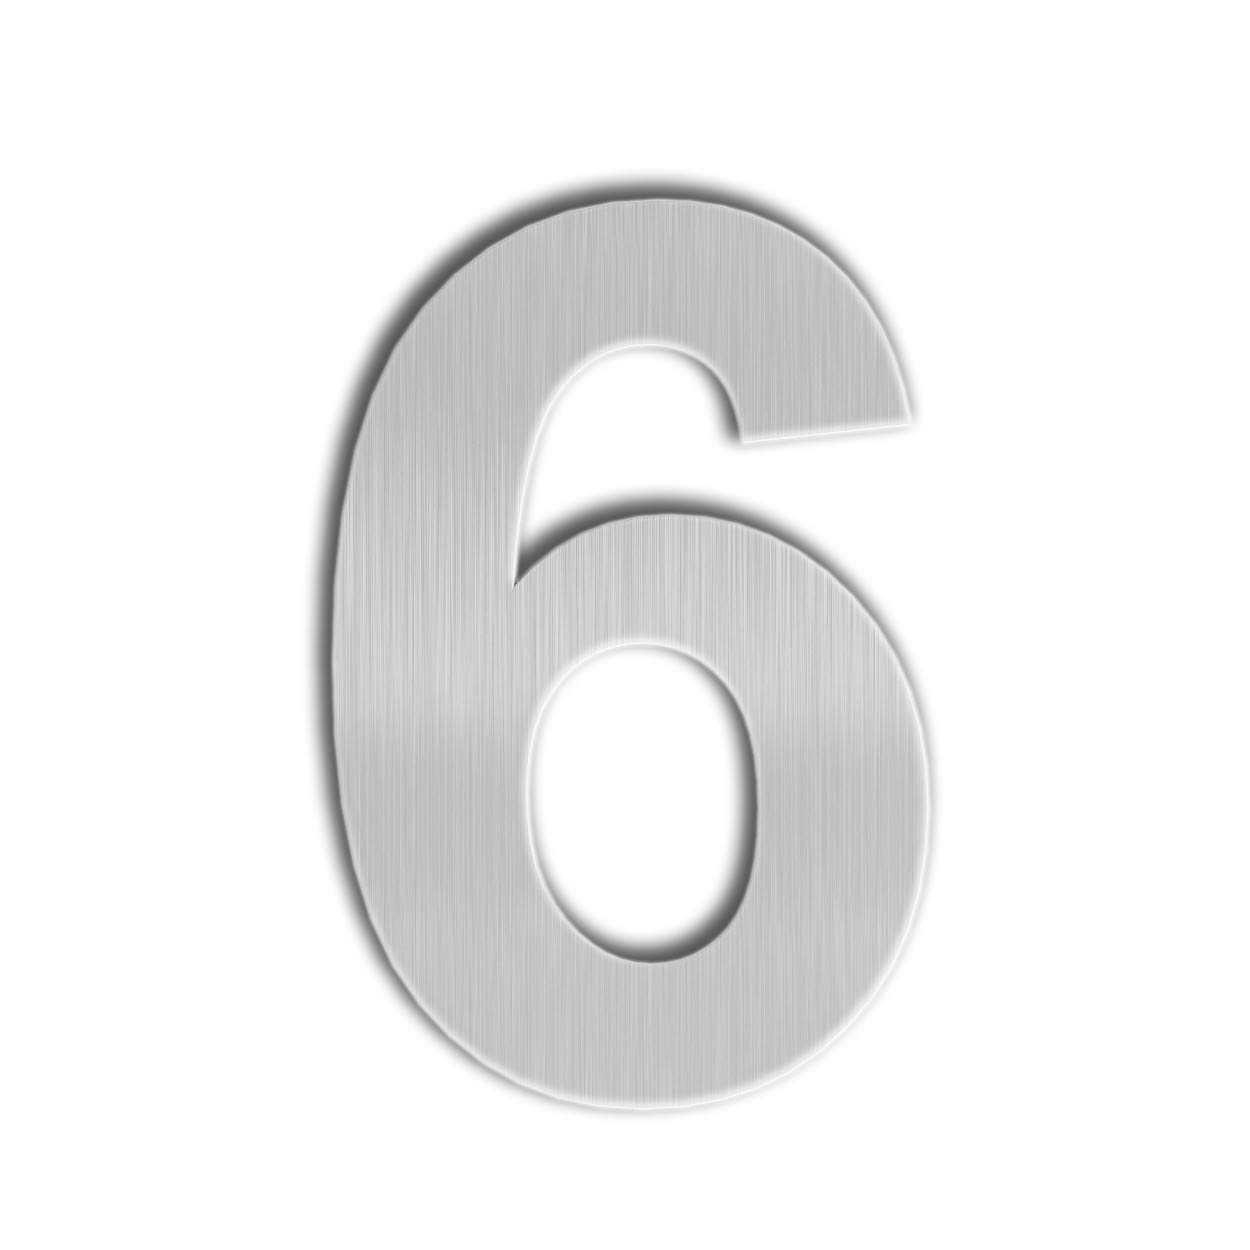 Qt modern house number 6 inch brushed stainless steel number 6 9 six nine floating appearance easy to install and made of solid 304 stainless steel